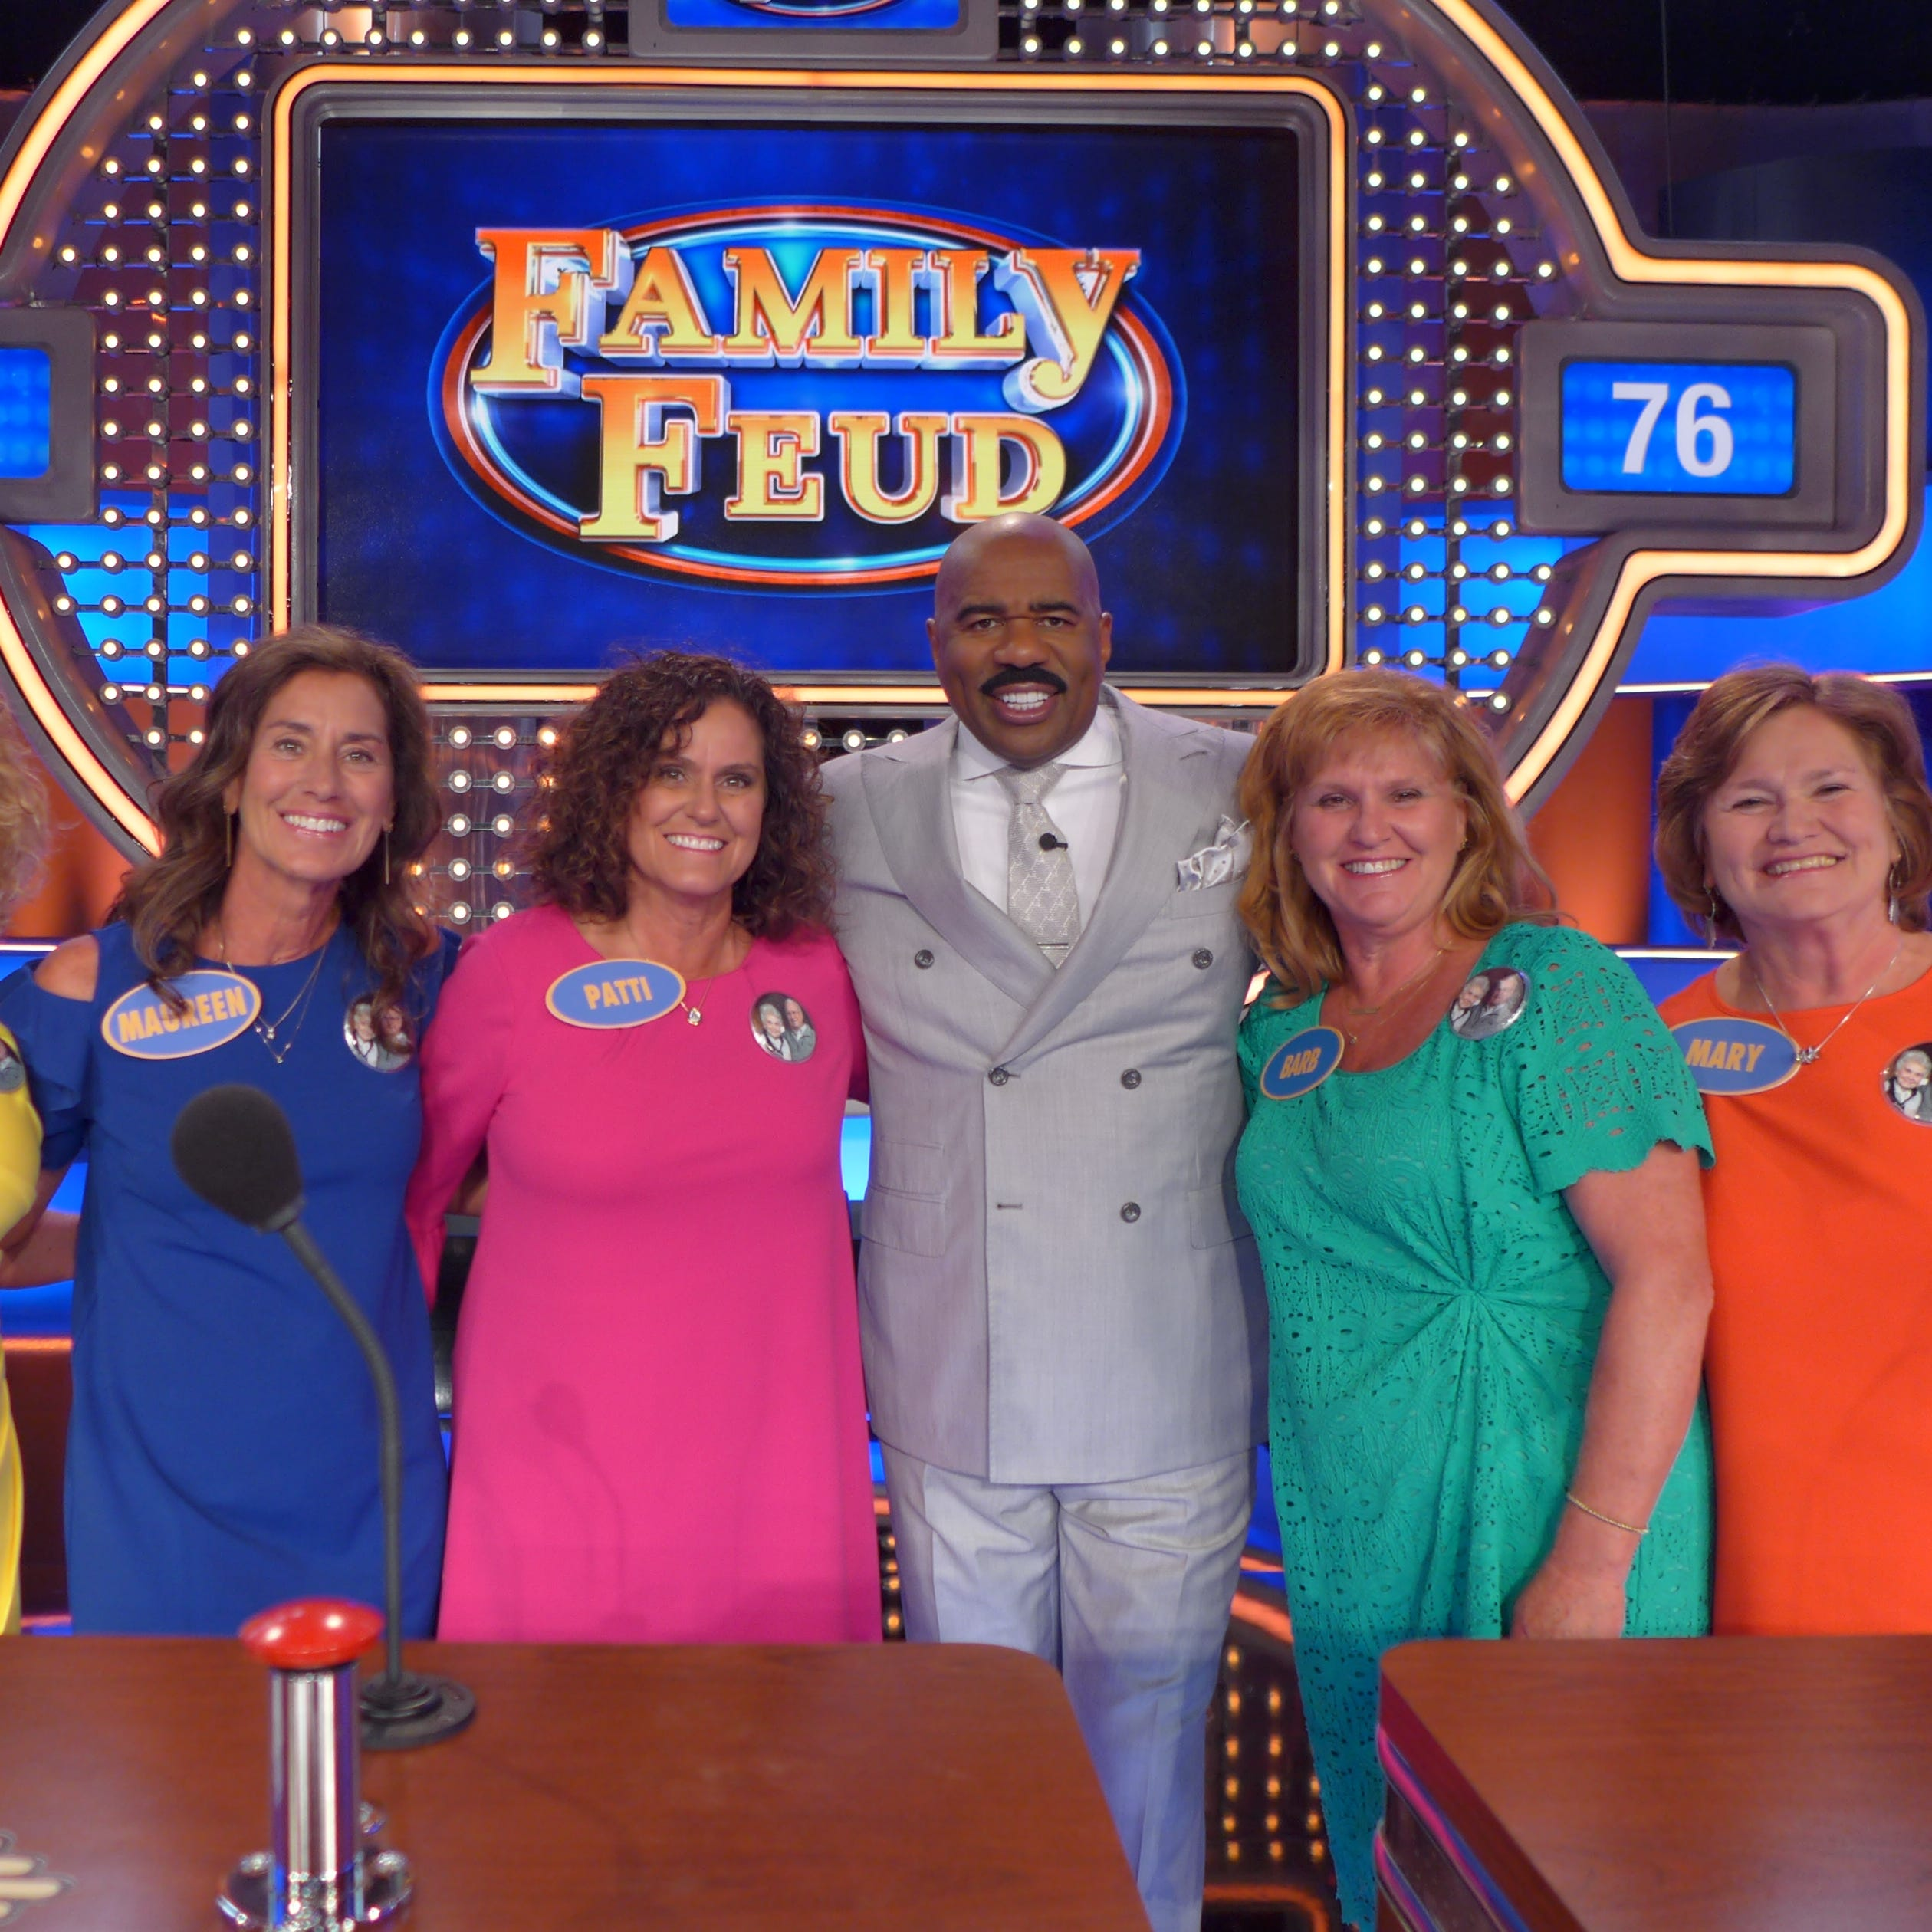 Five sisters from Freedom will be featured on 'Family Feud' this week